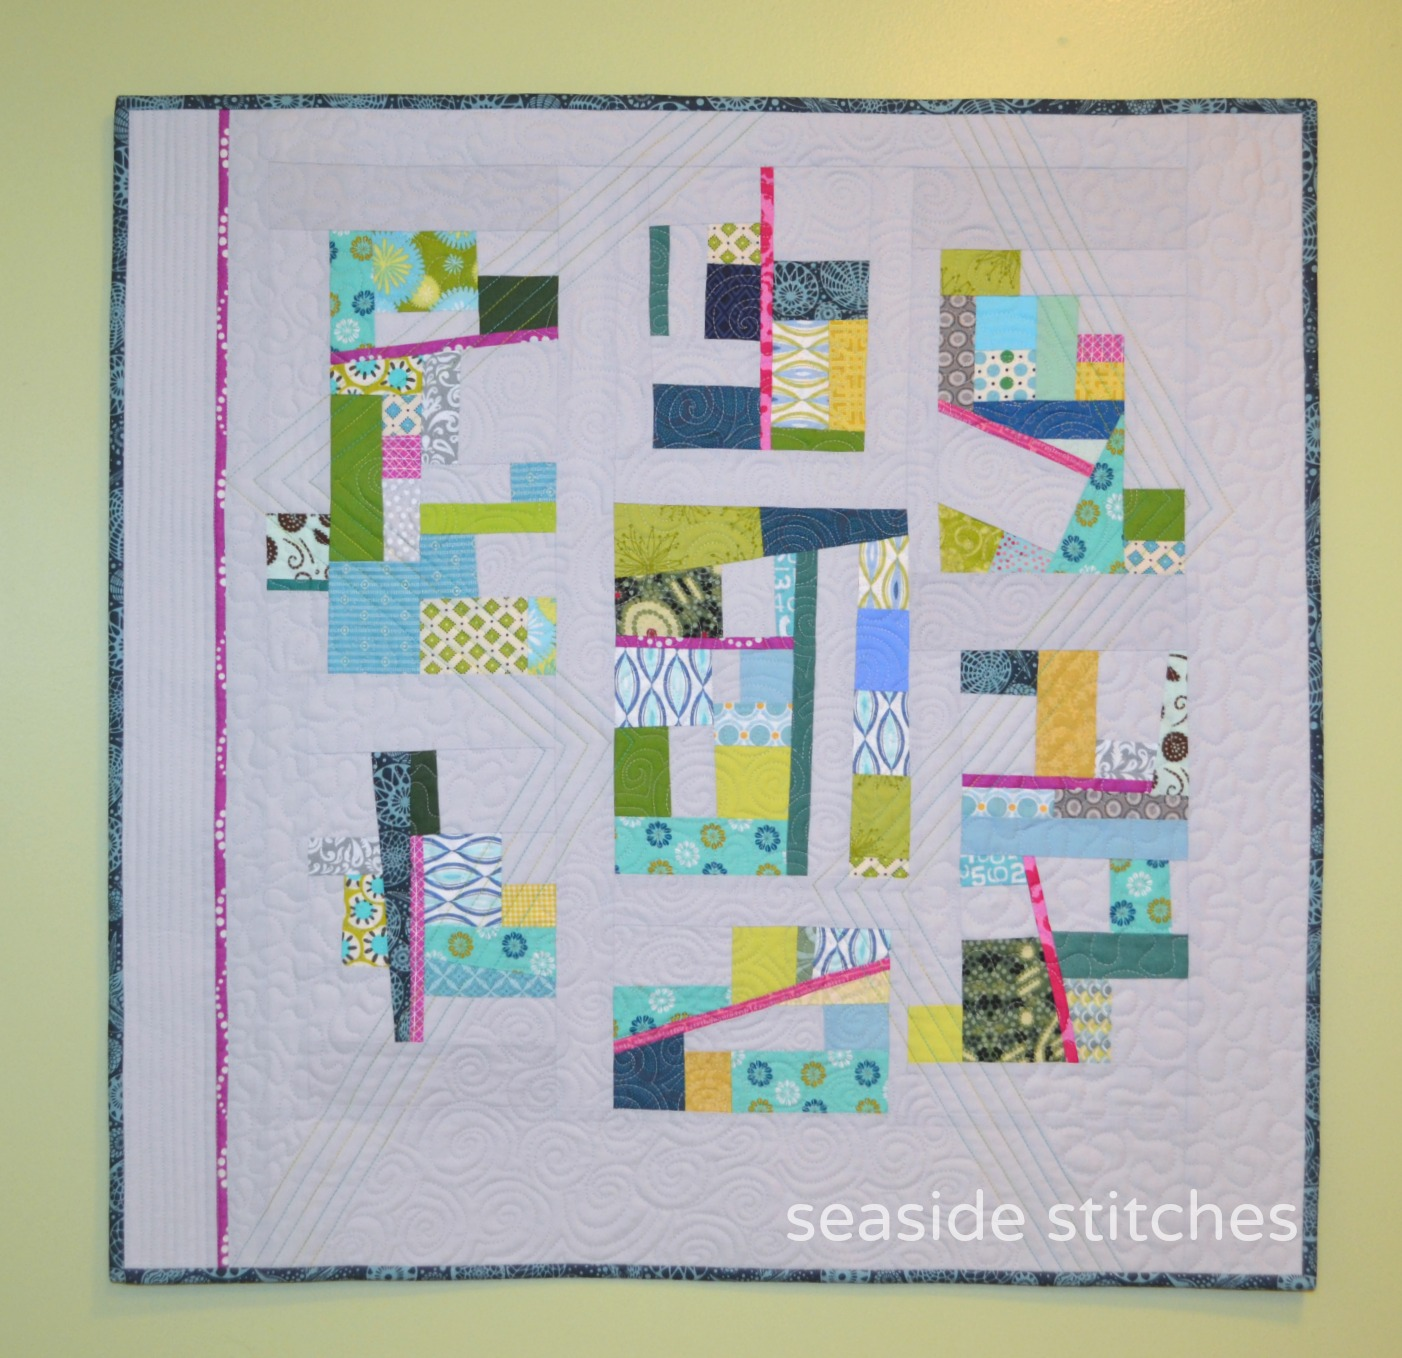 Seaside Stitches Improv With Jacquie